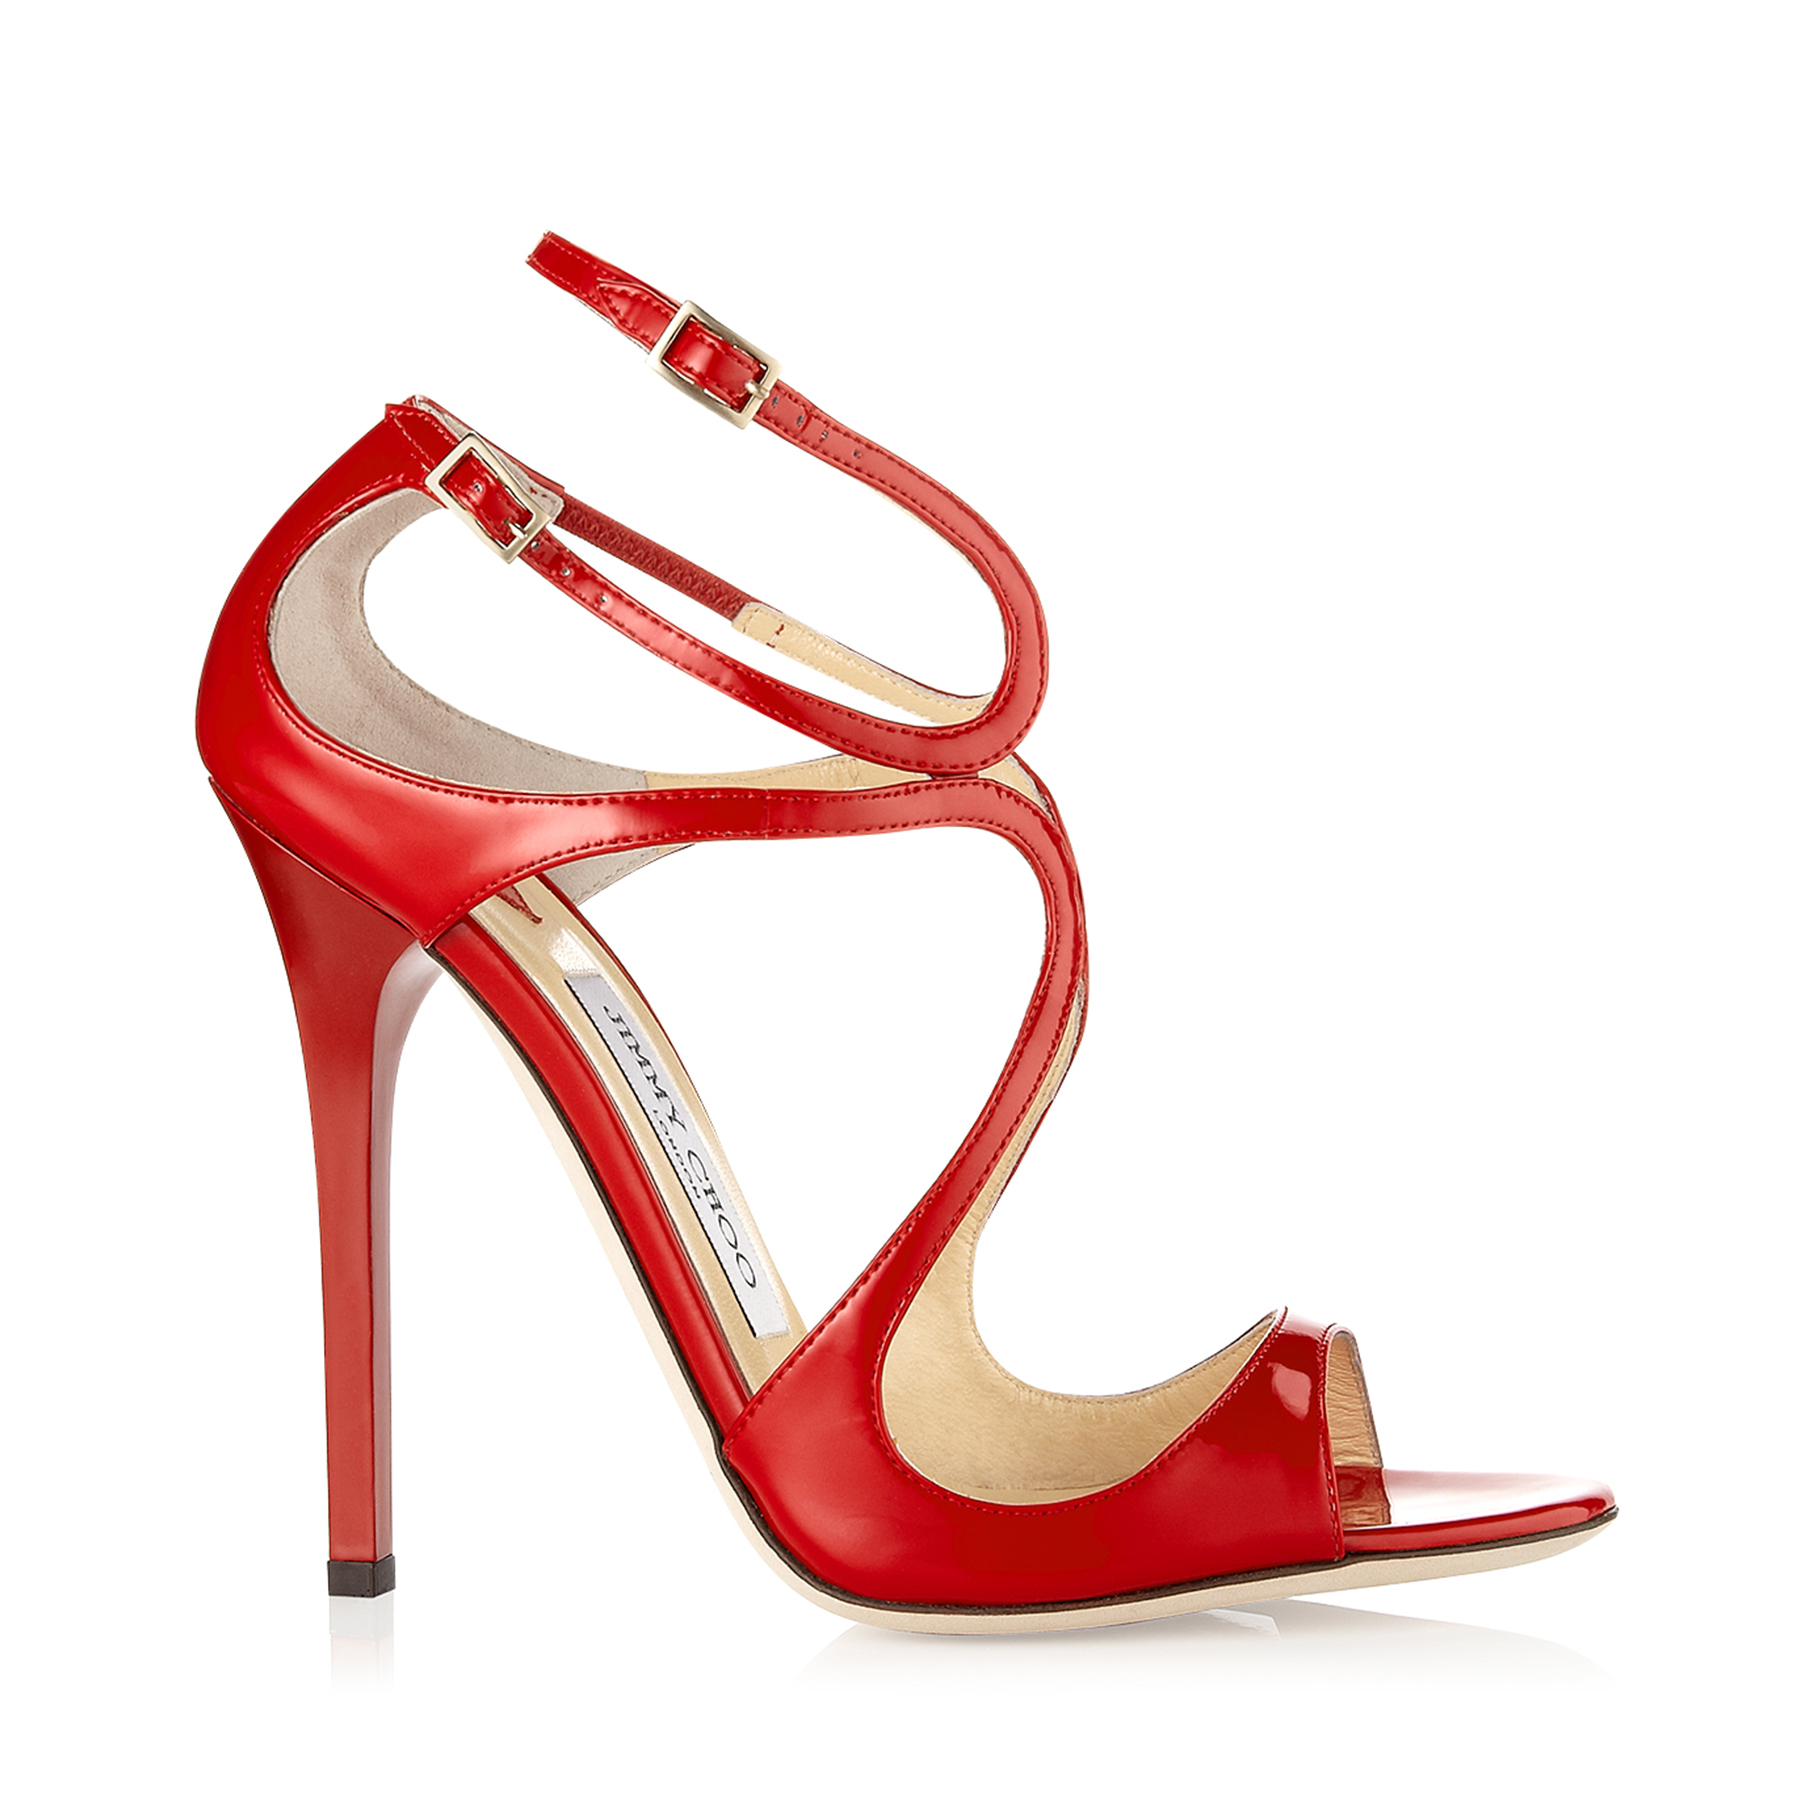 LANCE Red Patent Leather Strappy Sandals